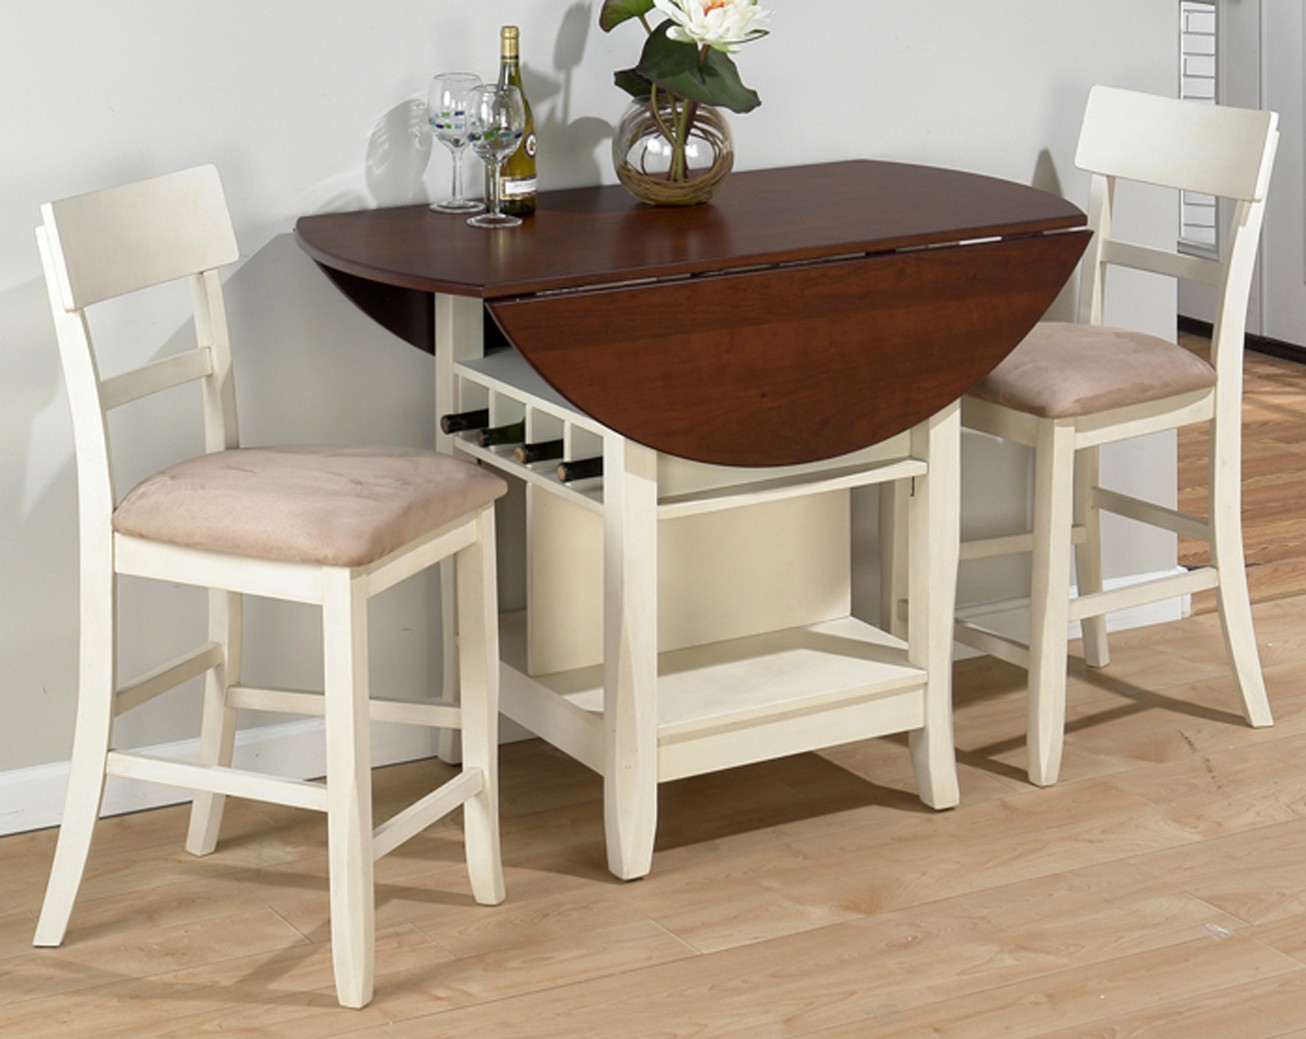 Cheap Kitchen Tables For Small Spaces Compact Dining Space Arrangement With Drop Leaf Dining Table For